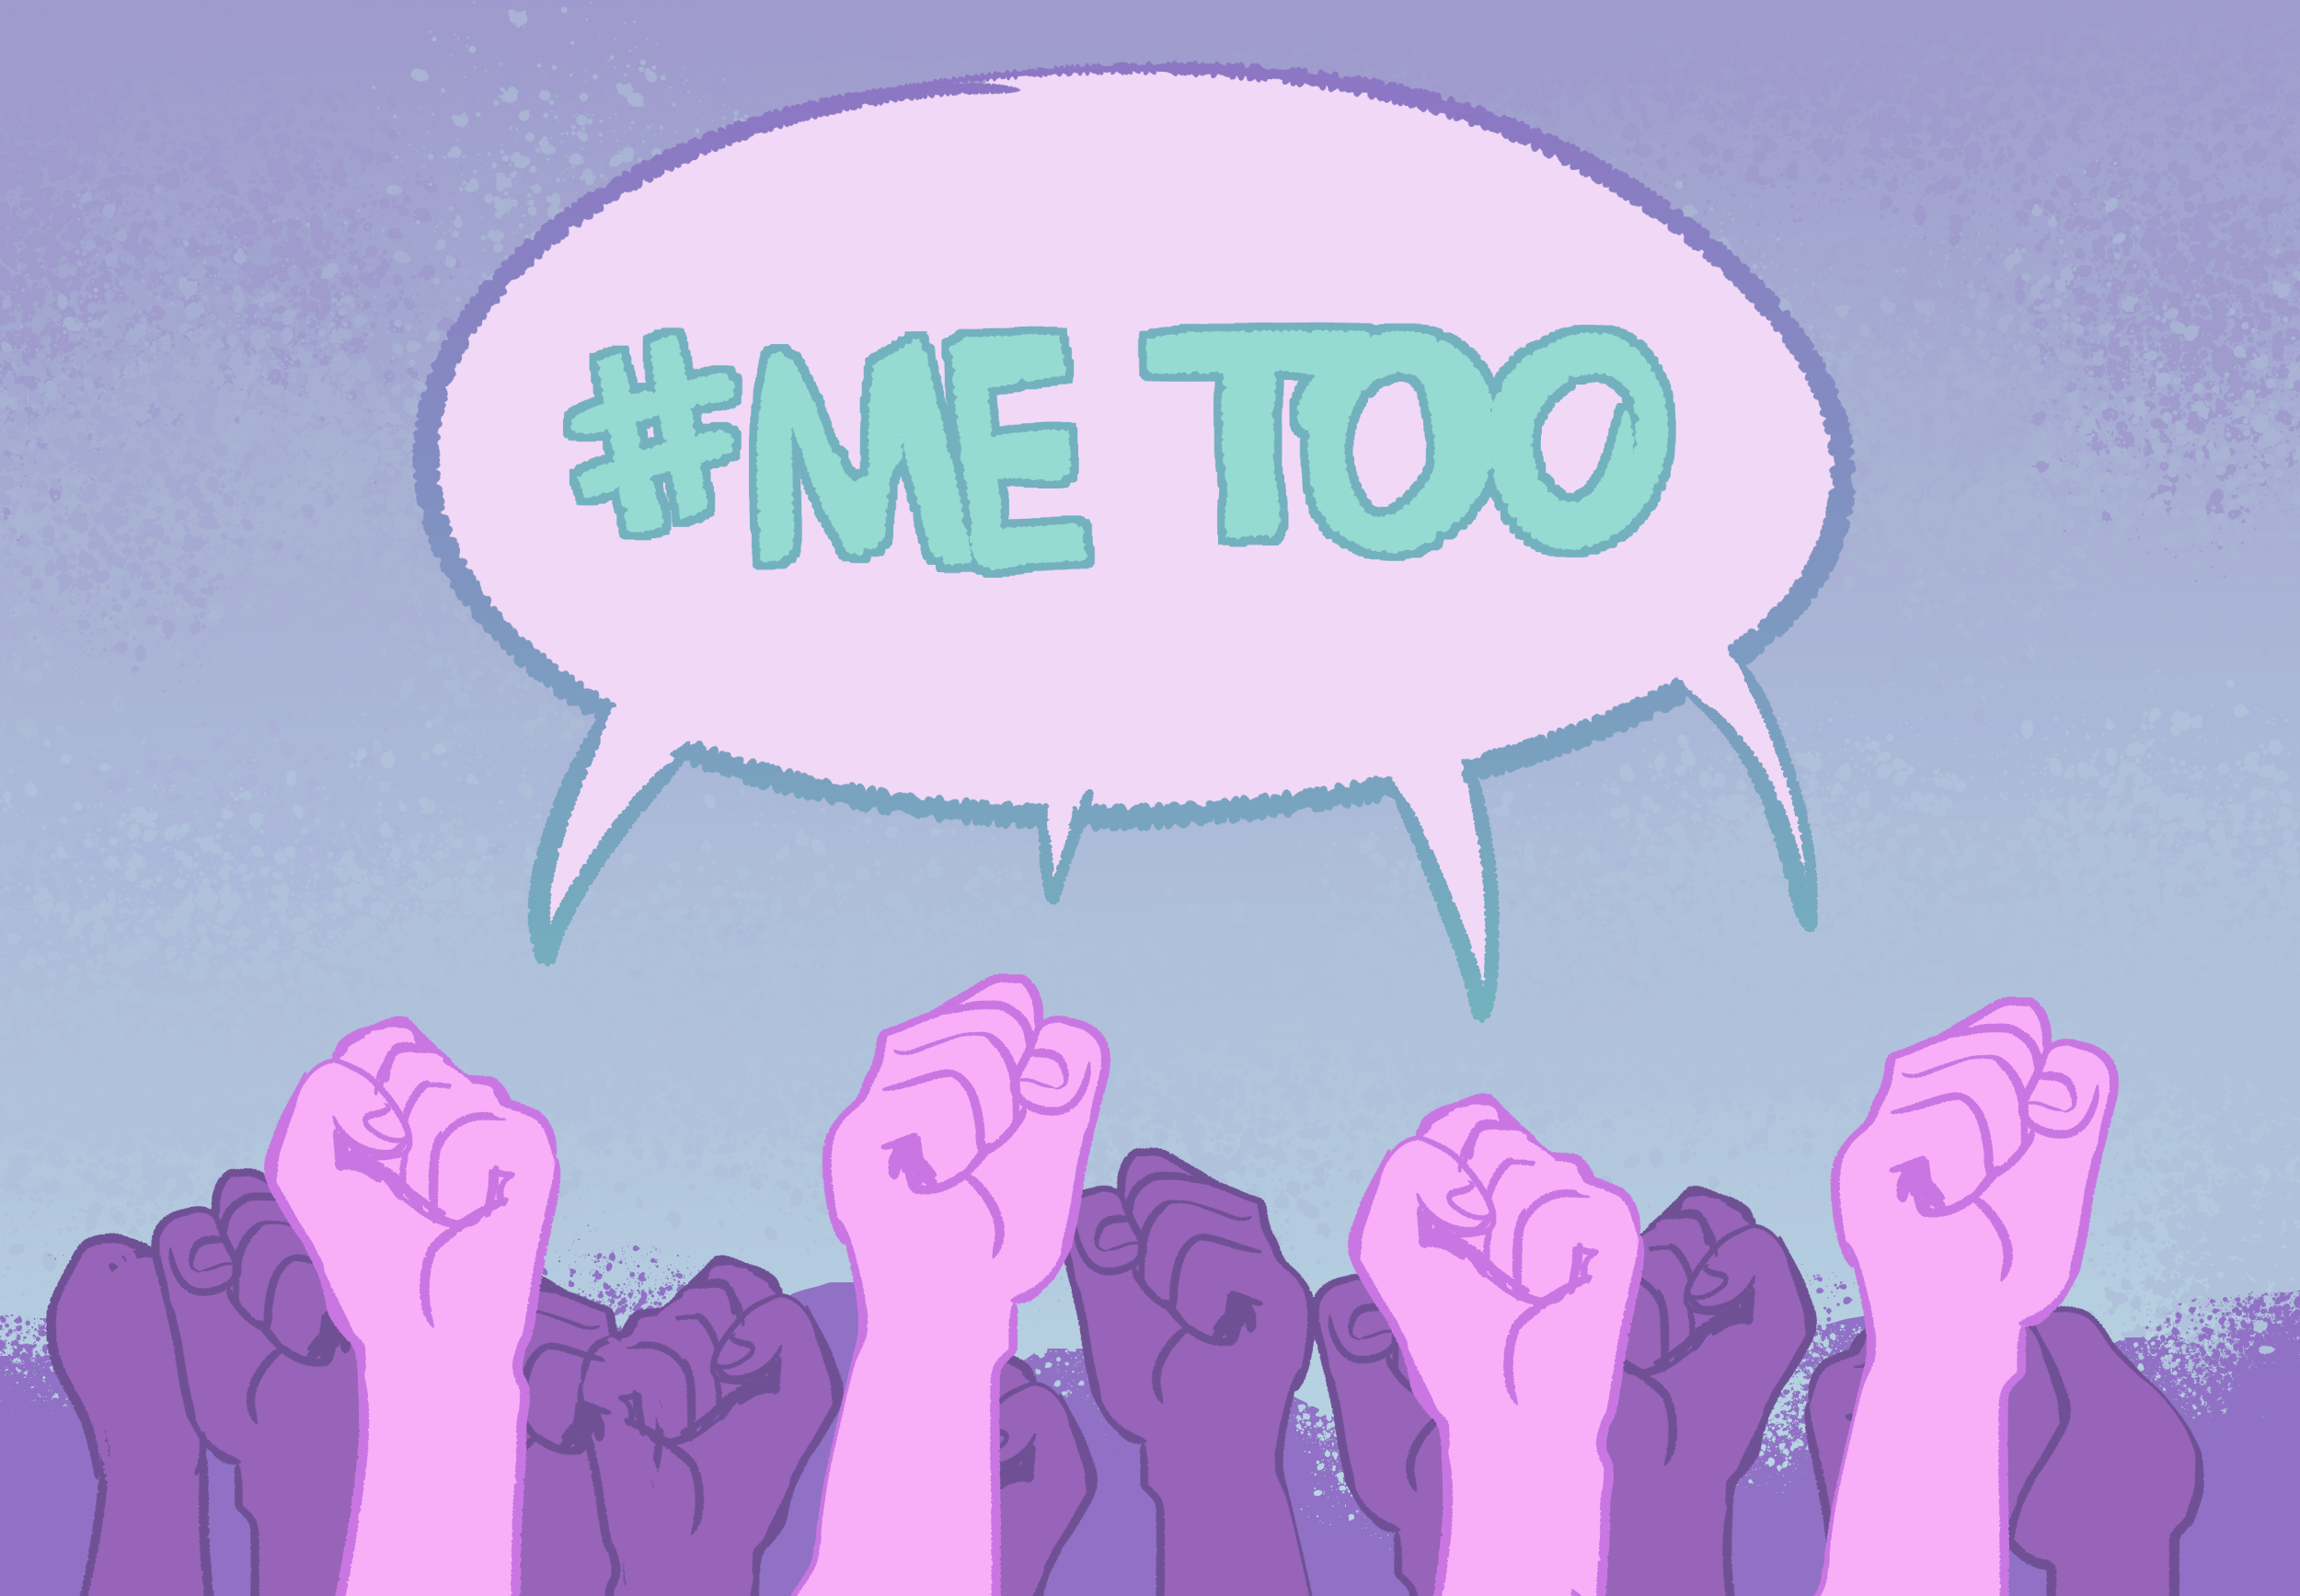 #MeToo is a call for accountability